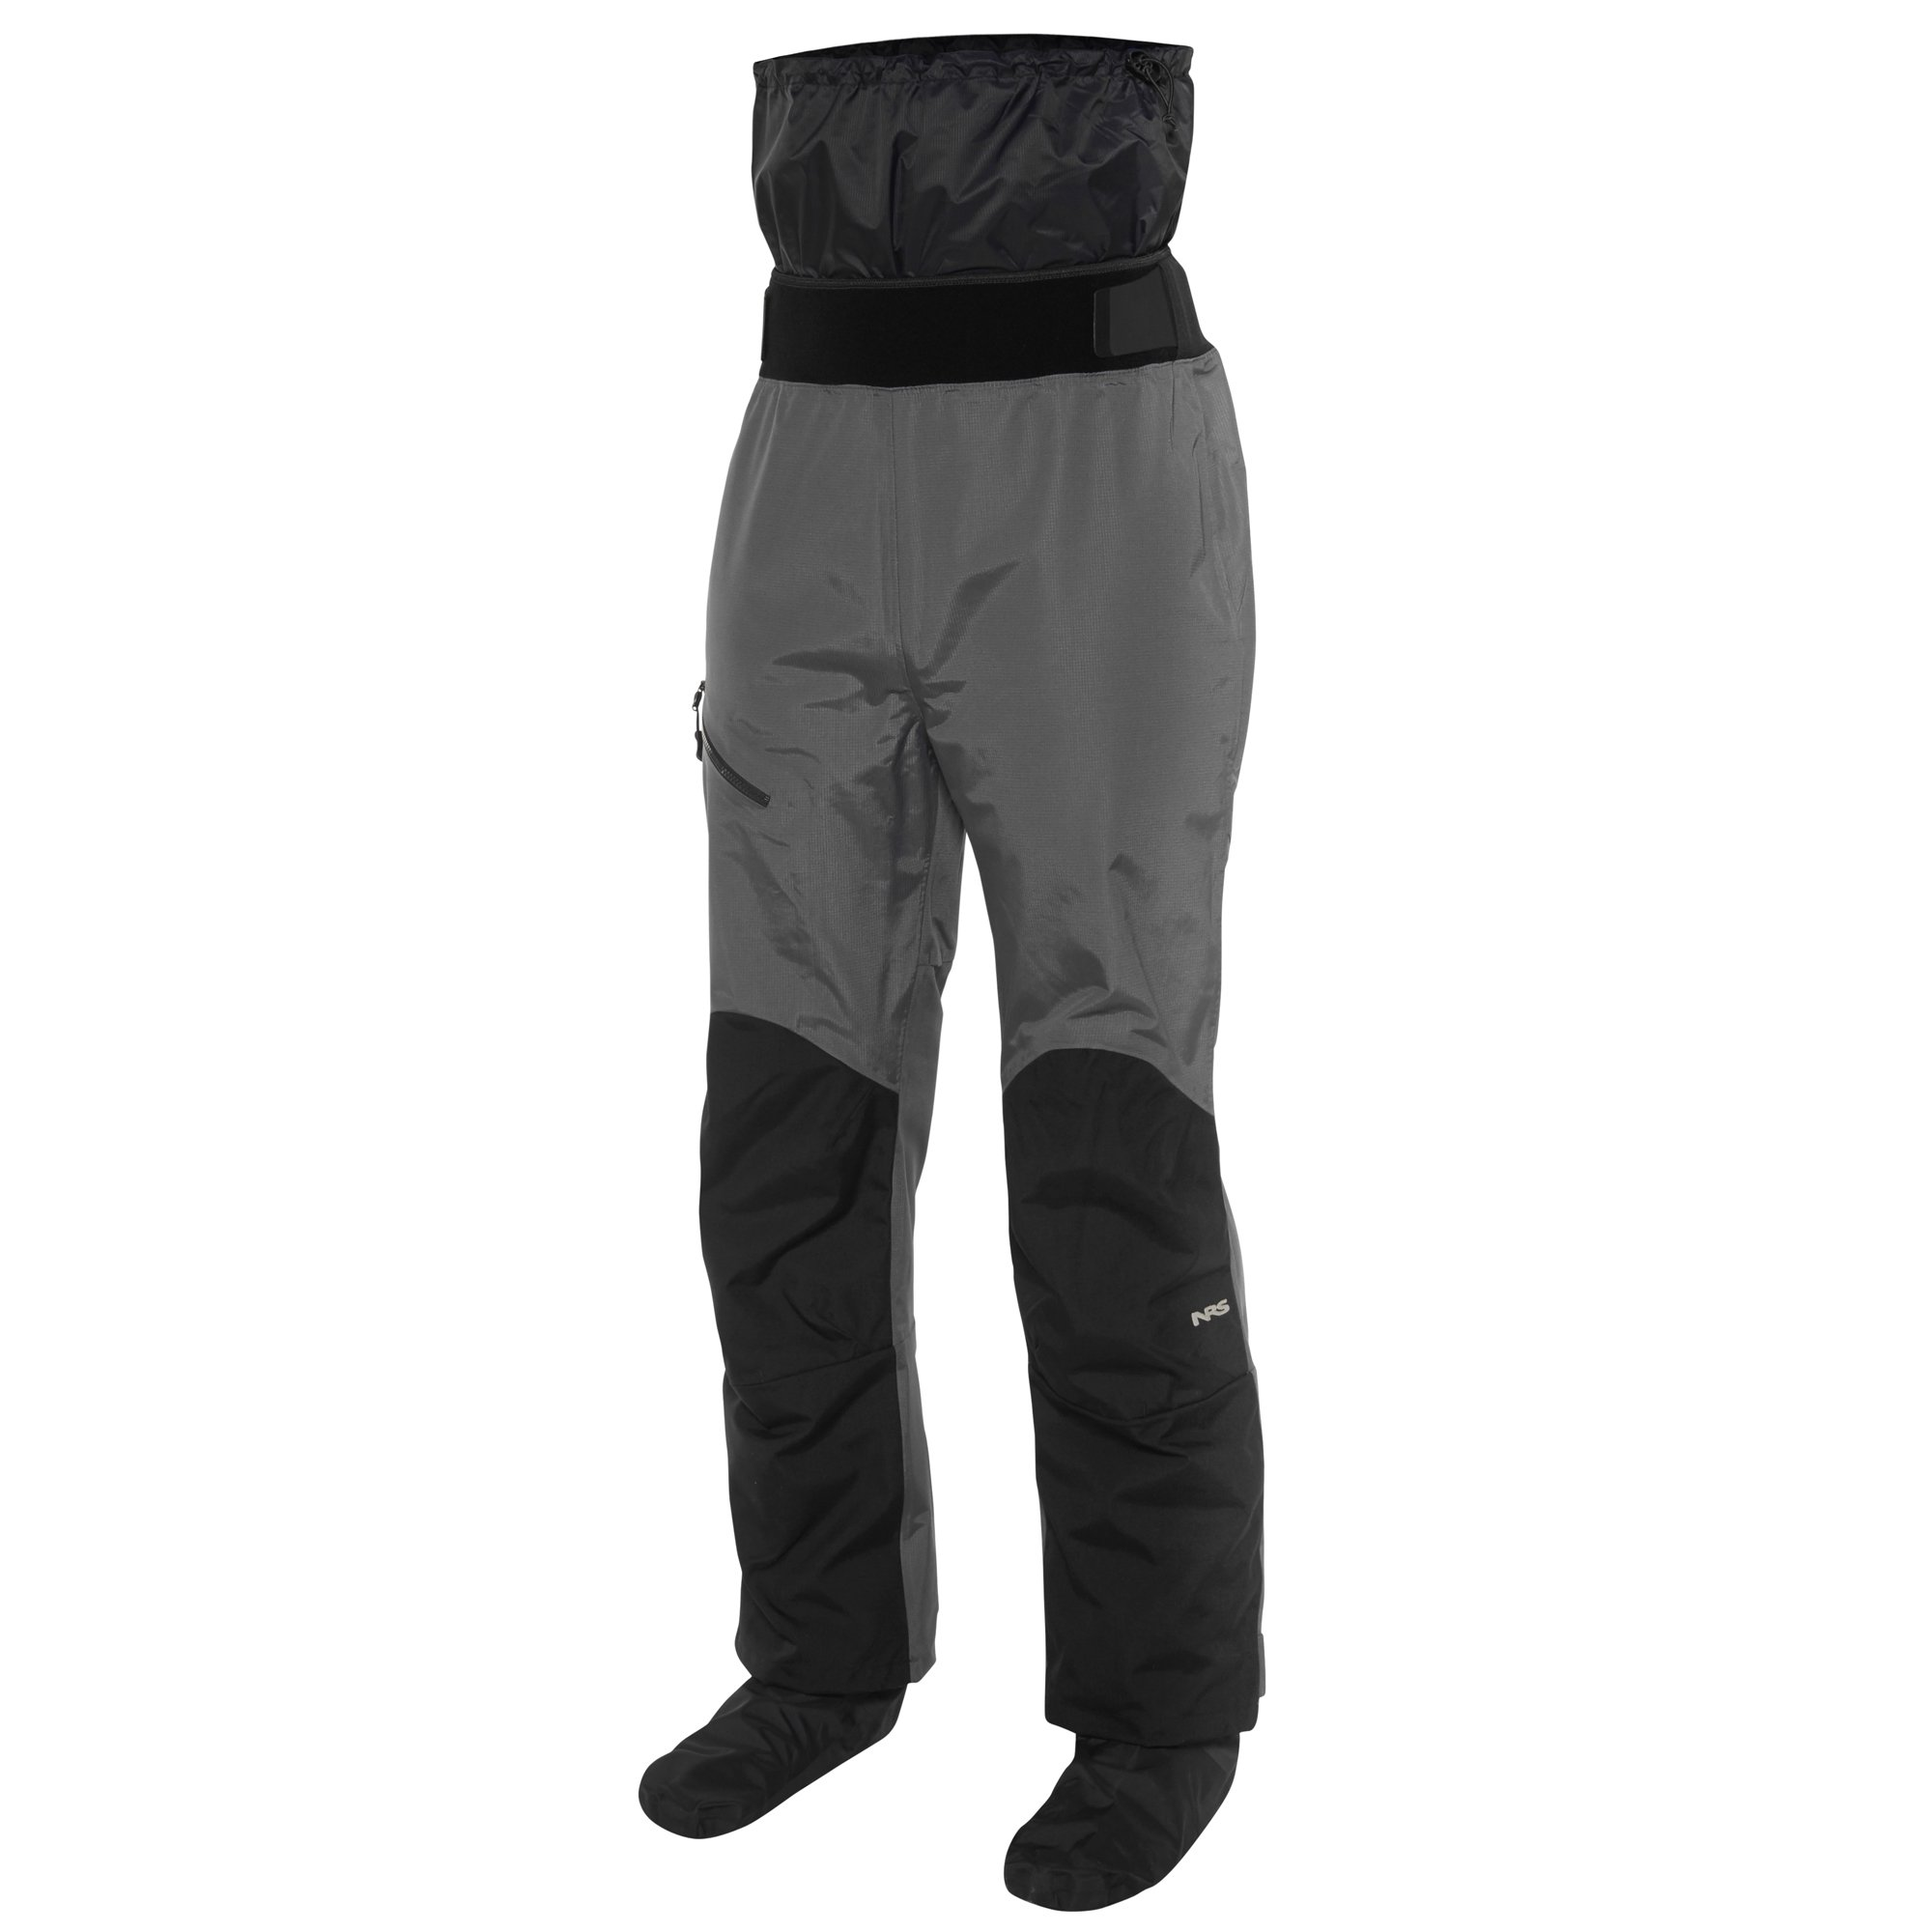 NRS Freefall Dry Pant Gunmetal Medium